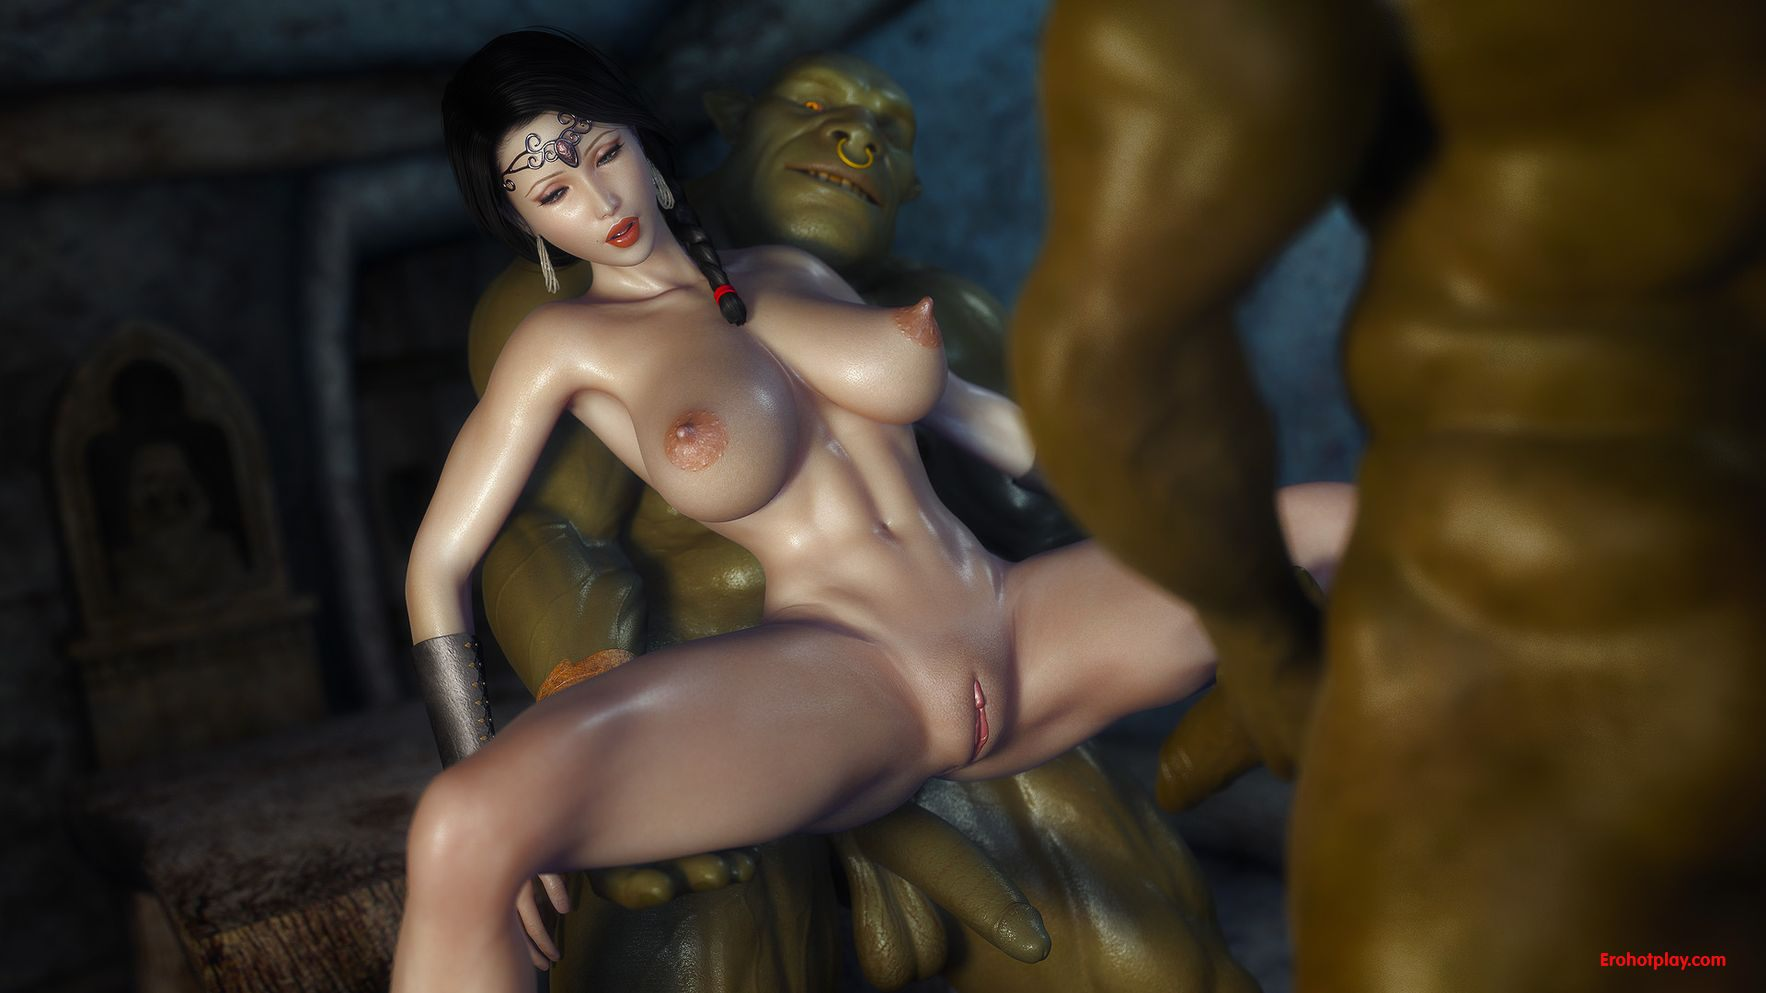 Girl orcs porn sexy streaming